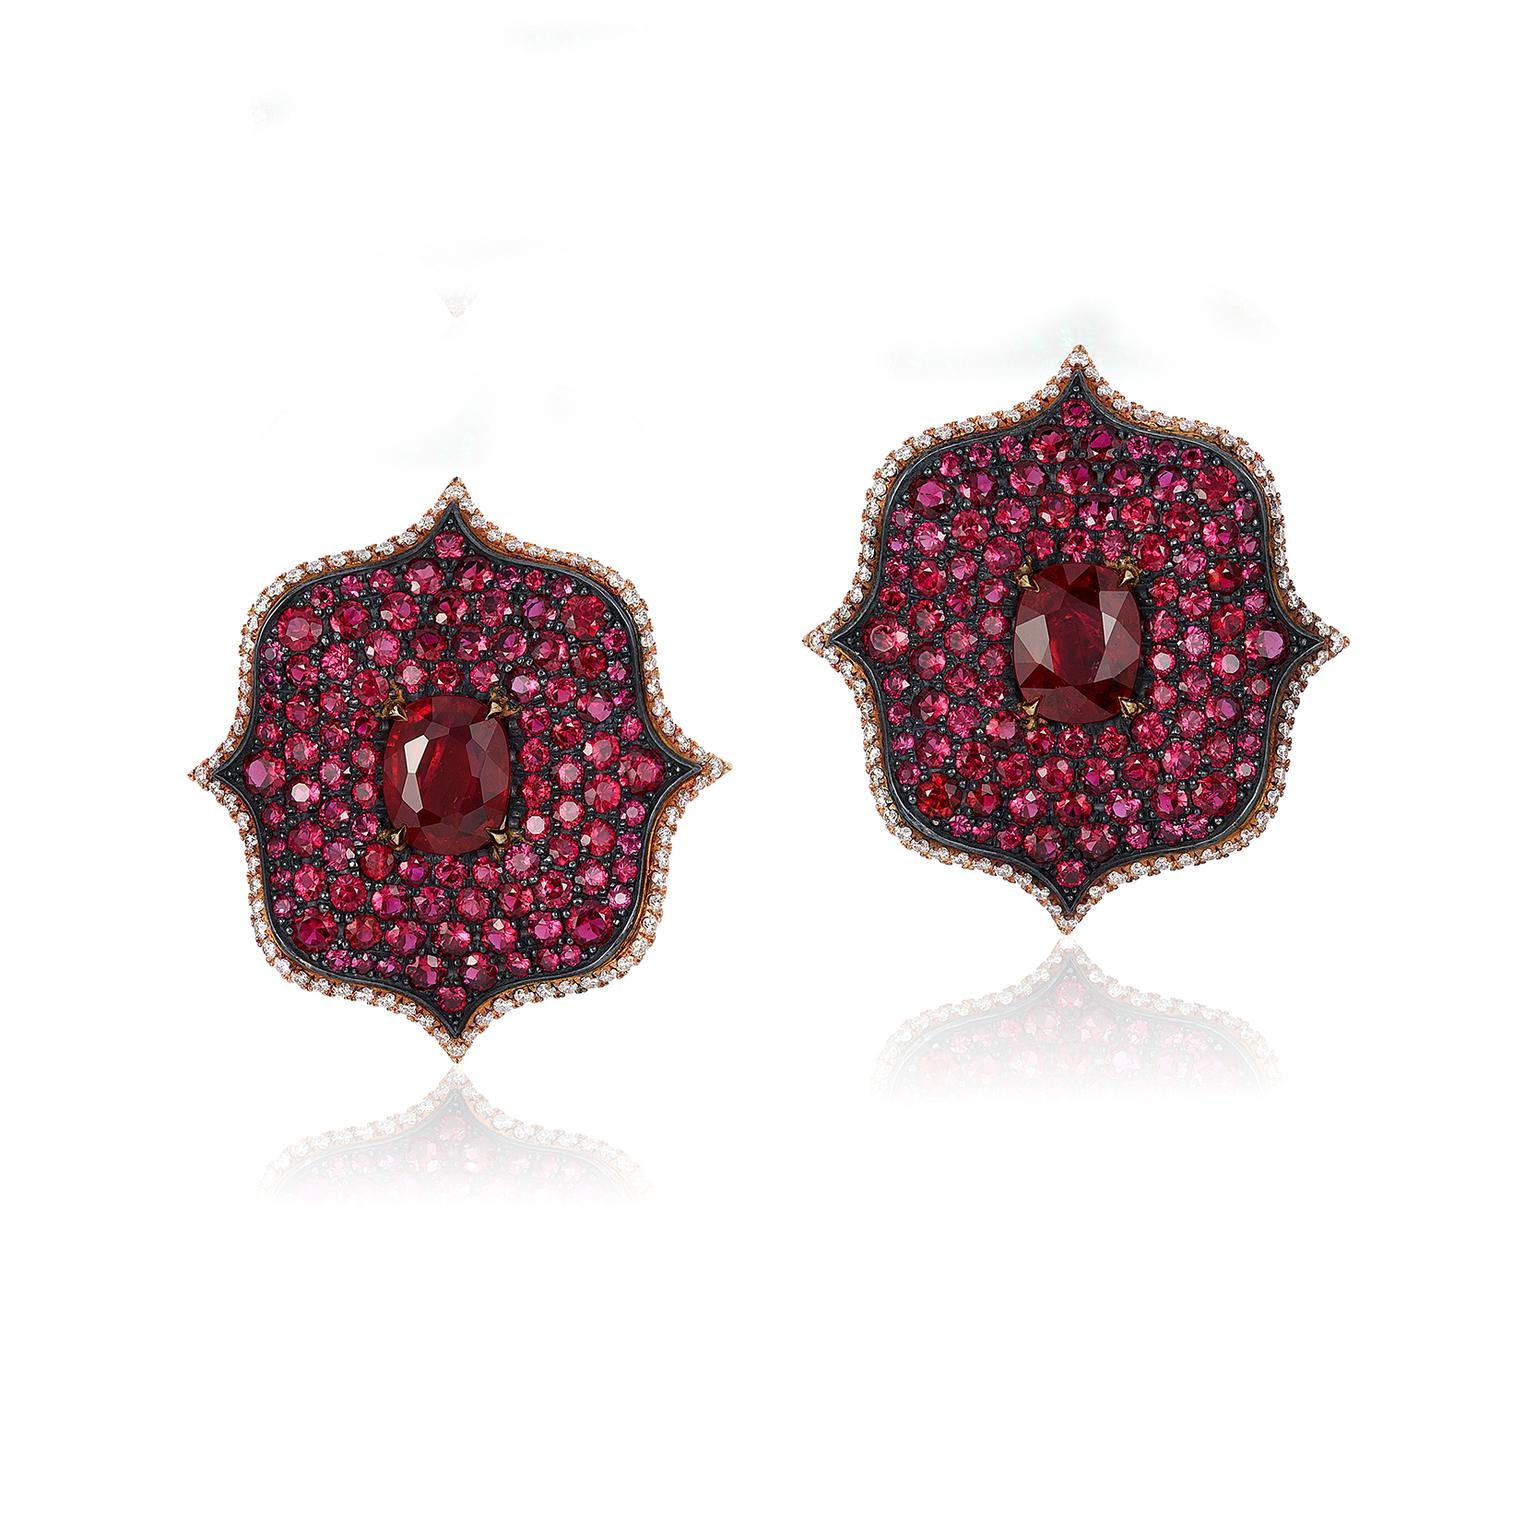 Bayco Monochrome Lotus ruby earrings